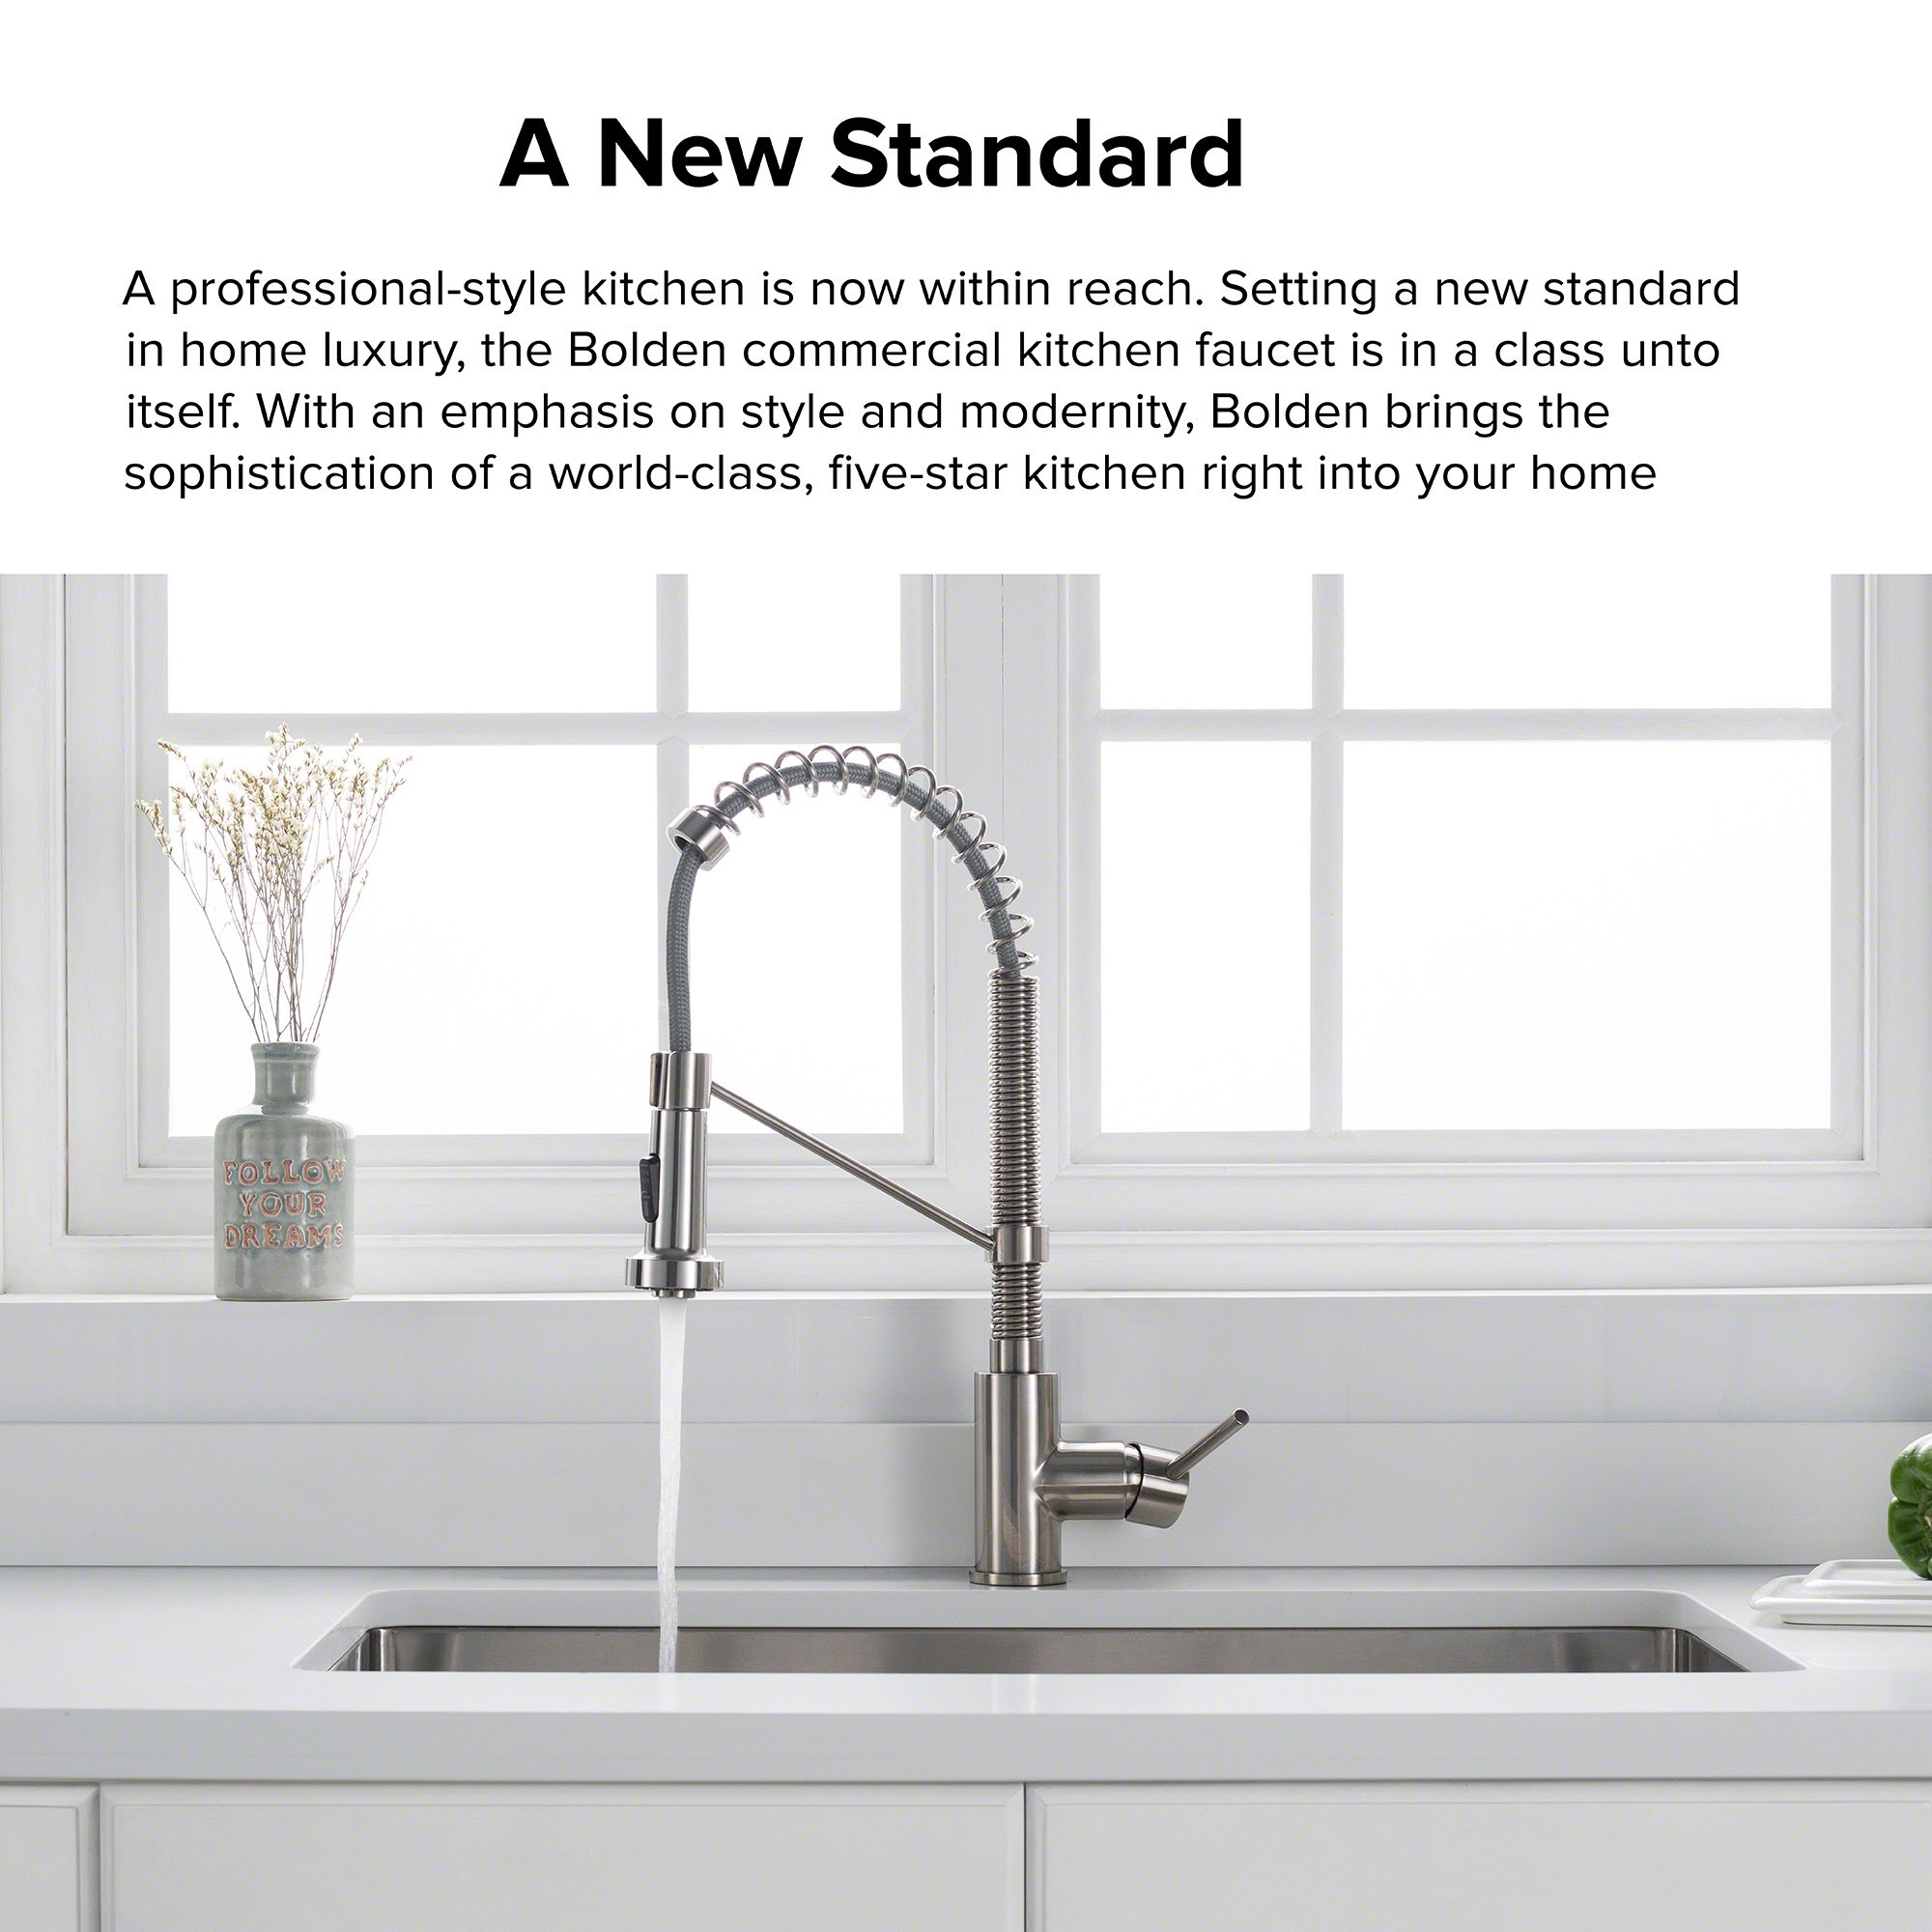 makes brand stand faucet what kraus reviews kpf kitchen the out